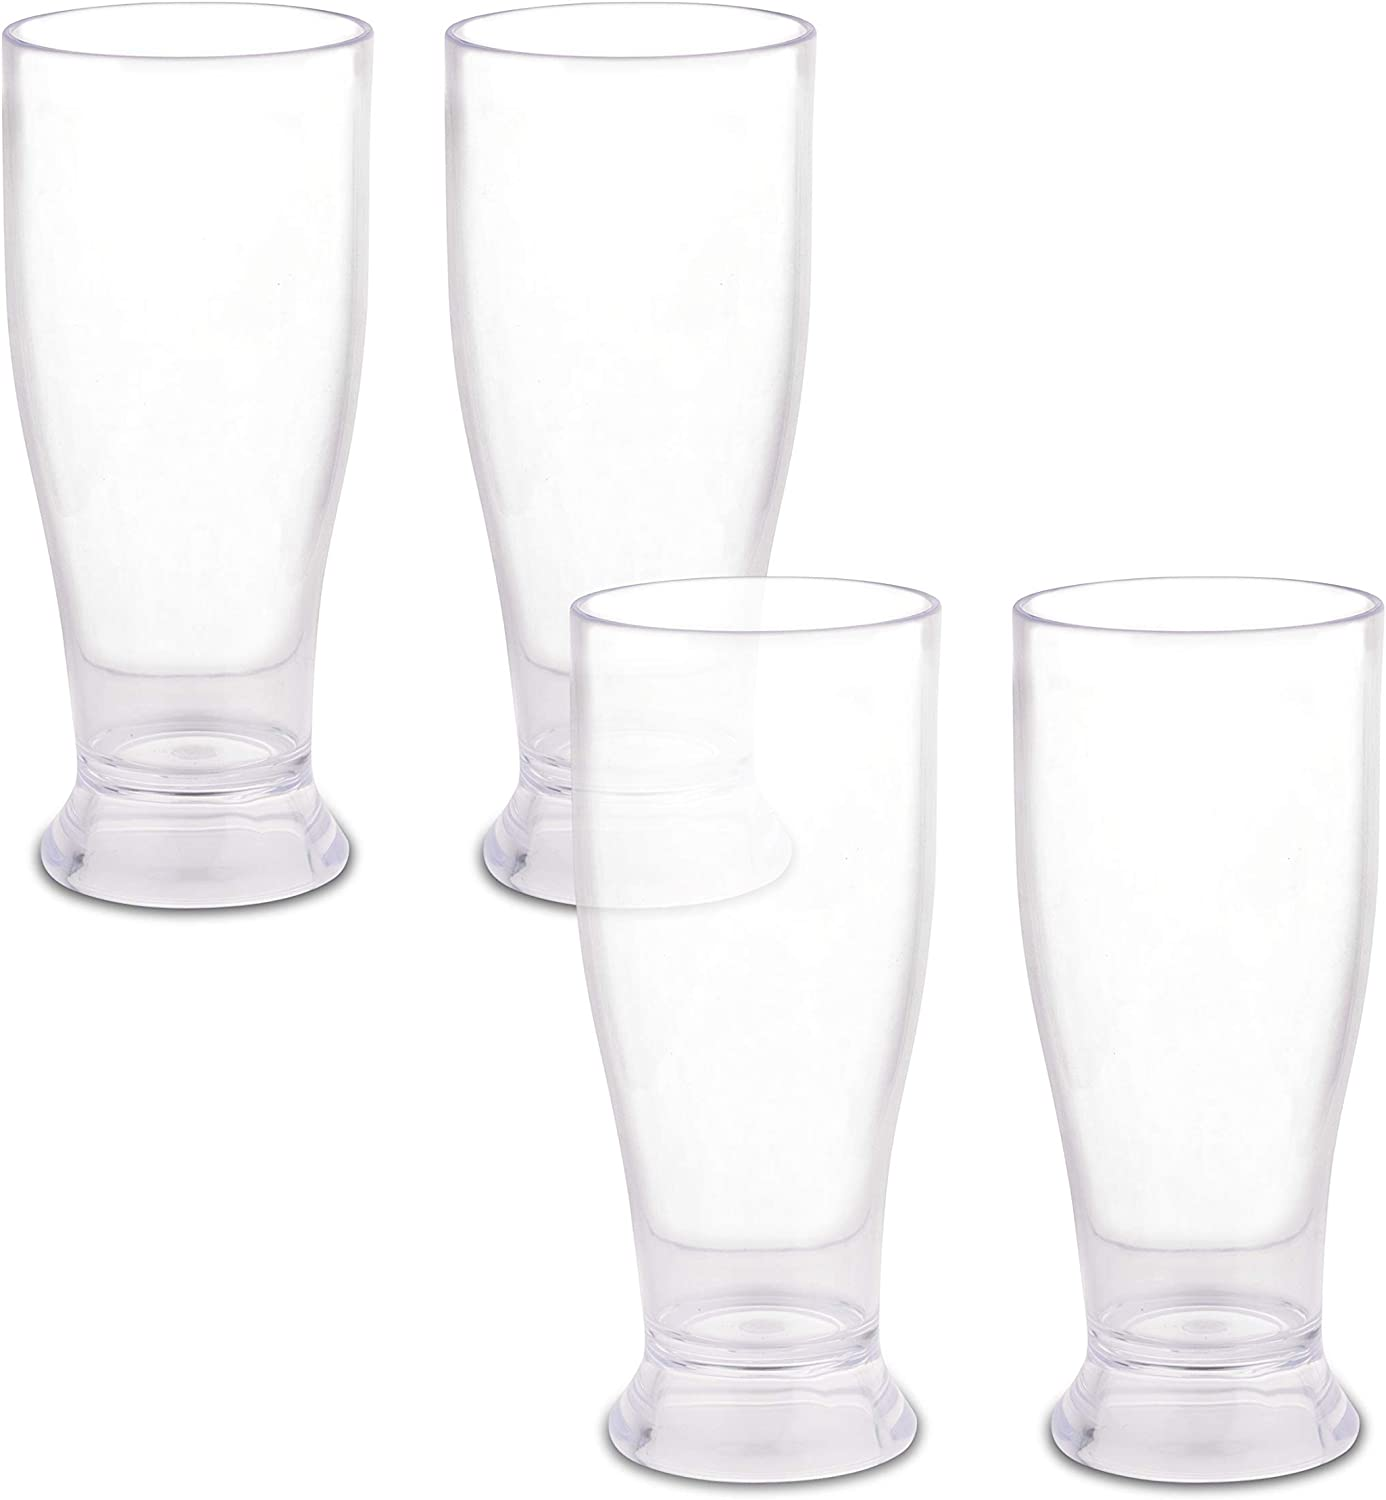 Homeries Plastic Drinking Glasses Tumbler 11-ounce (Set of 4) – Reusable Acrylic Clear & Break Resistant Beverage Drinkware Cups – BPA Free - Restaurant Quality Juice & Drink Cups